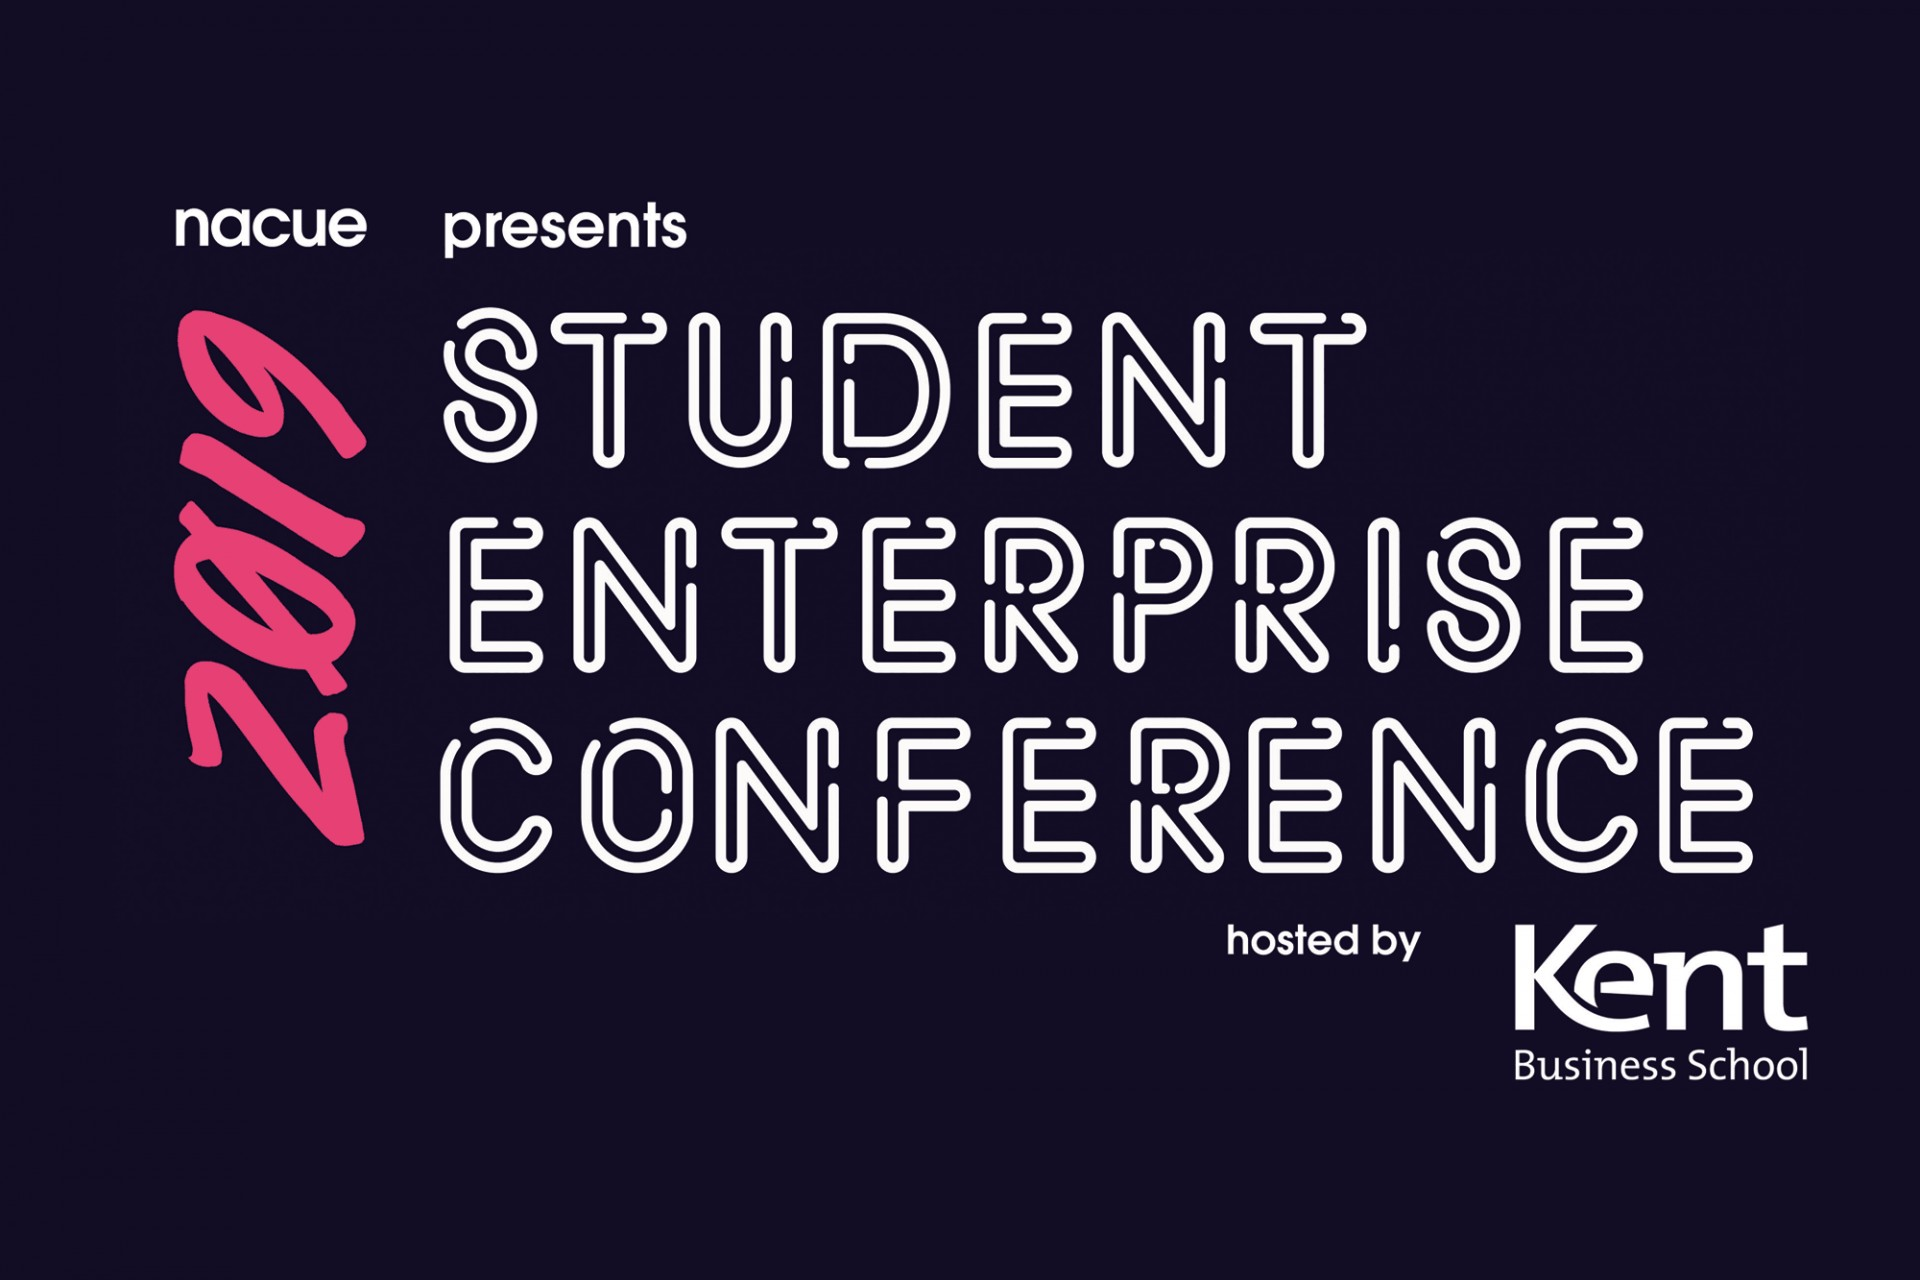 National Association of College and University Entrepreneurs (NACUE) Student Enterprise Conference 2019